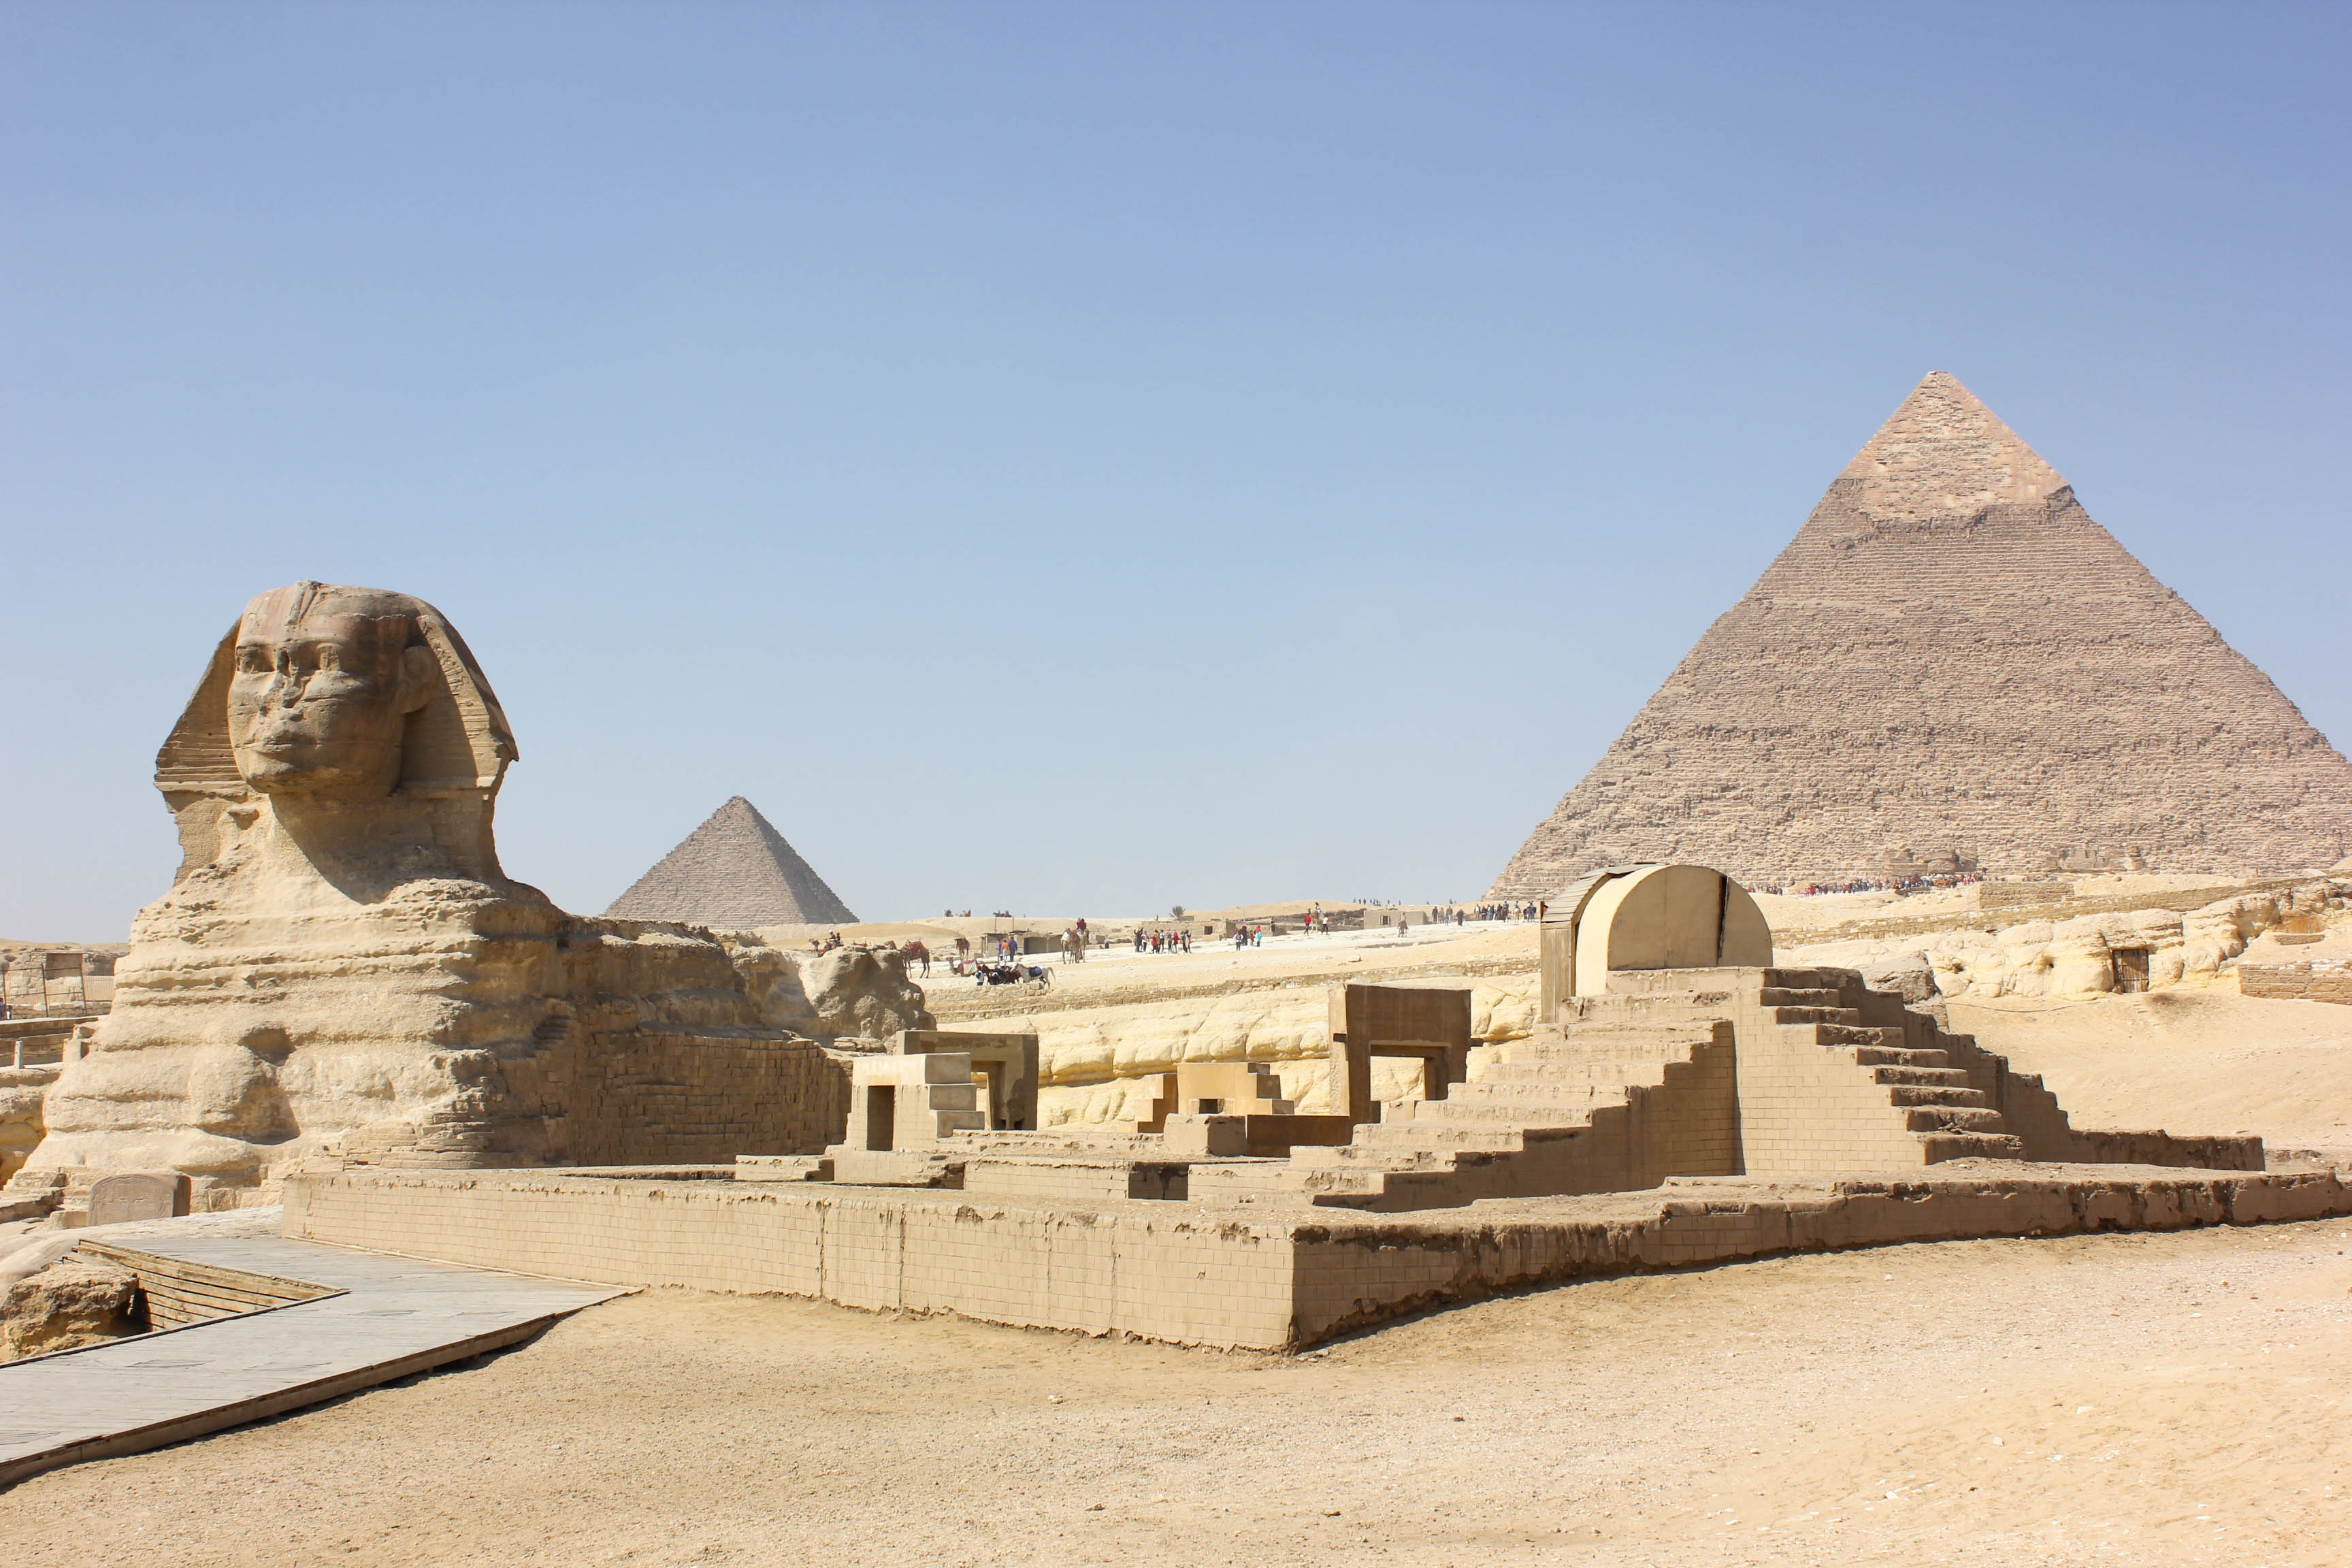 Pyramids And Sculpture Of Old Kingdom Egypt